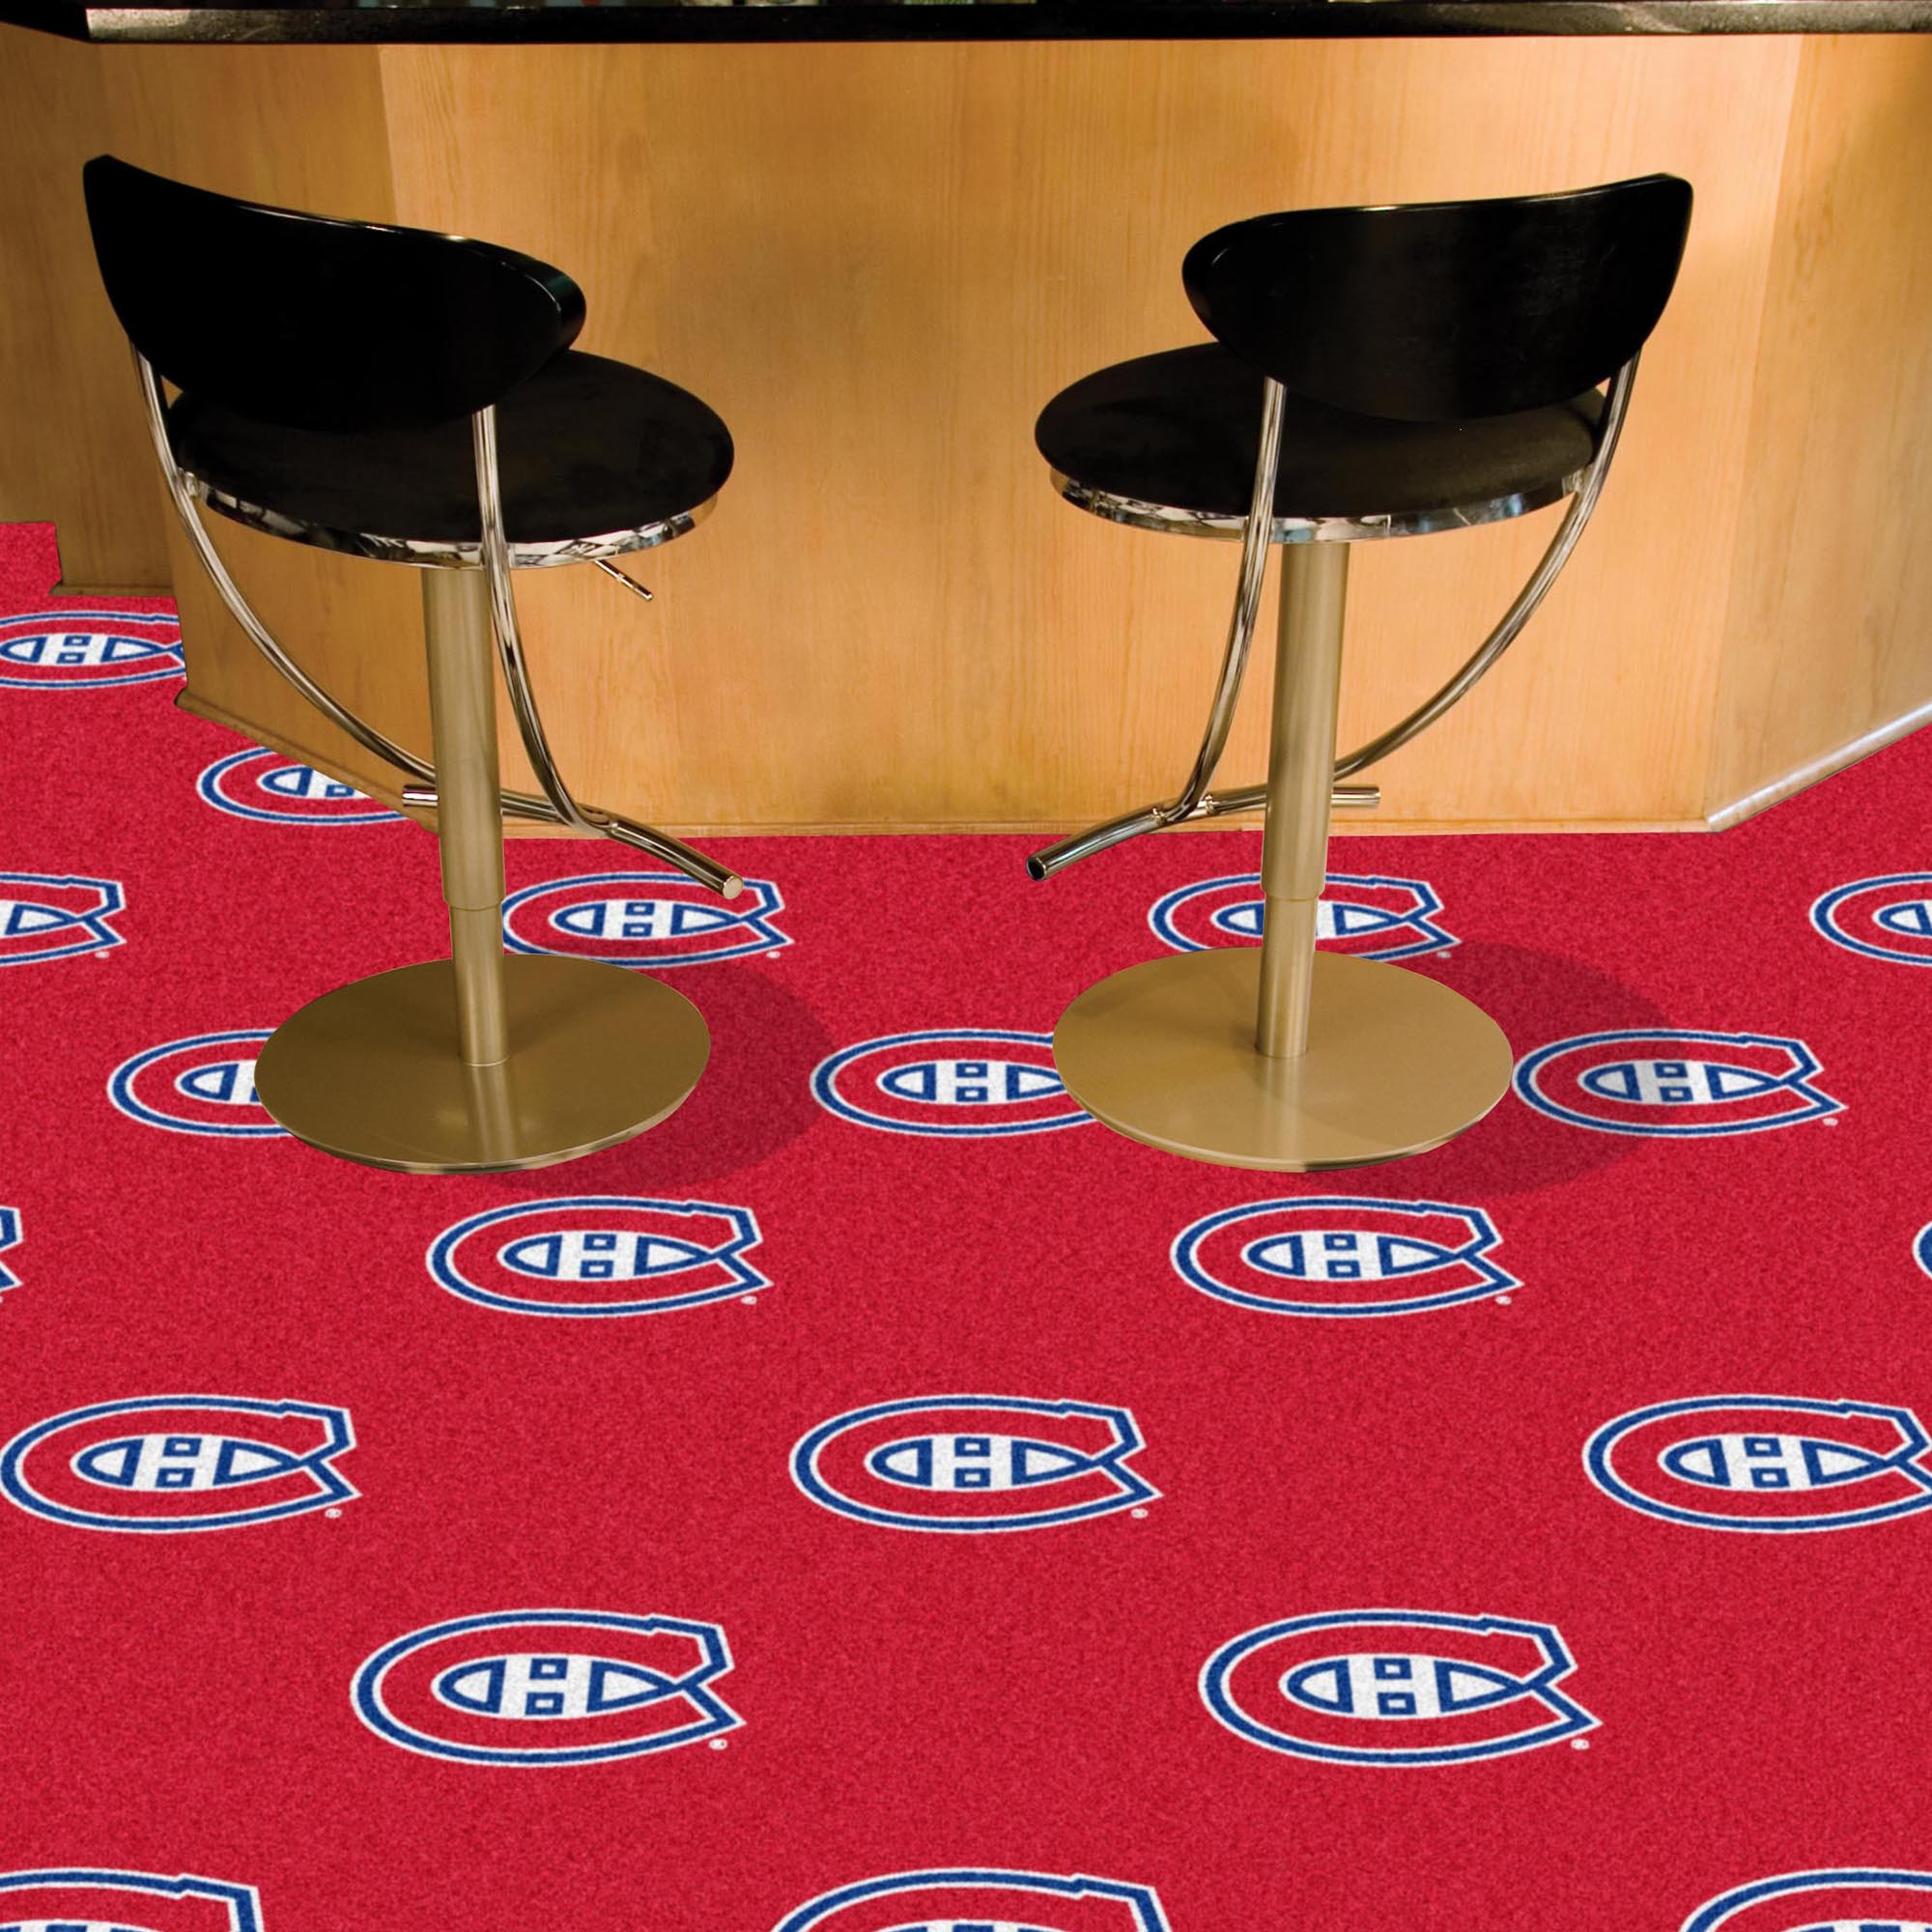 Montreal Canadiens Carpet Tiles 18x18 in.